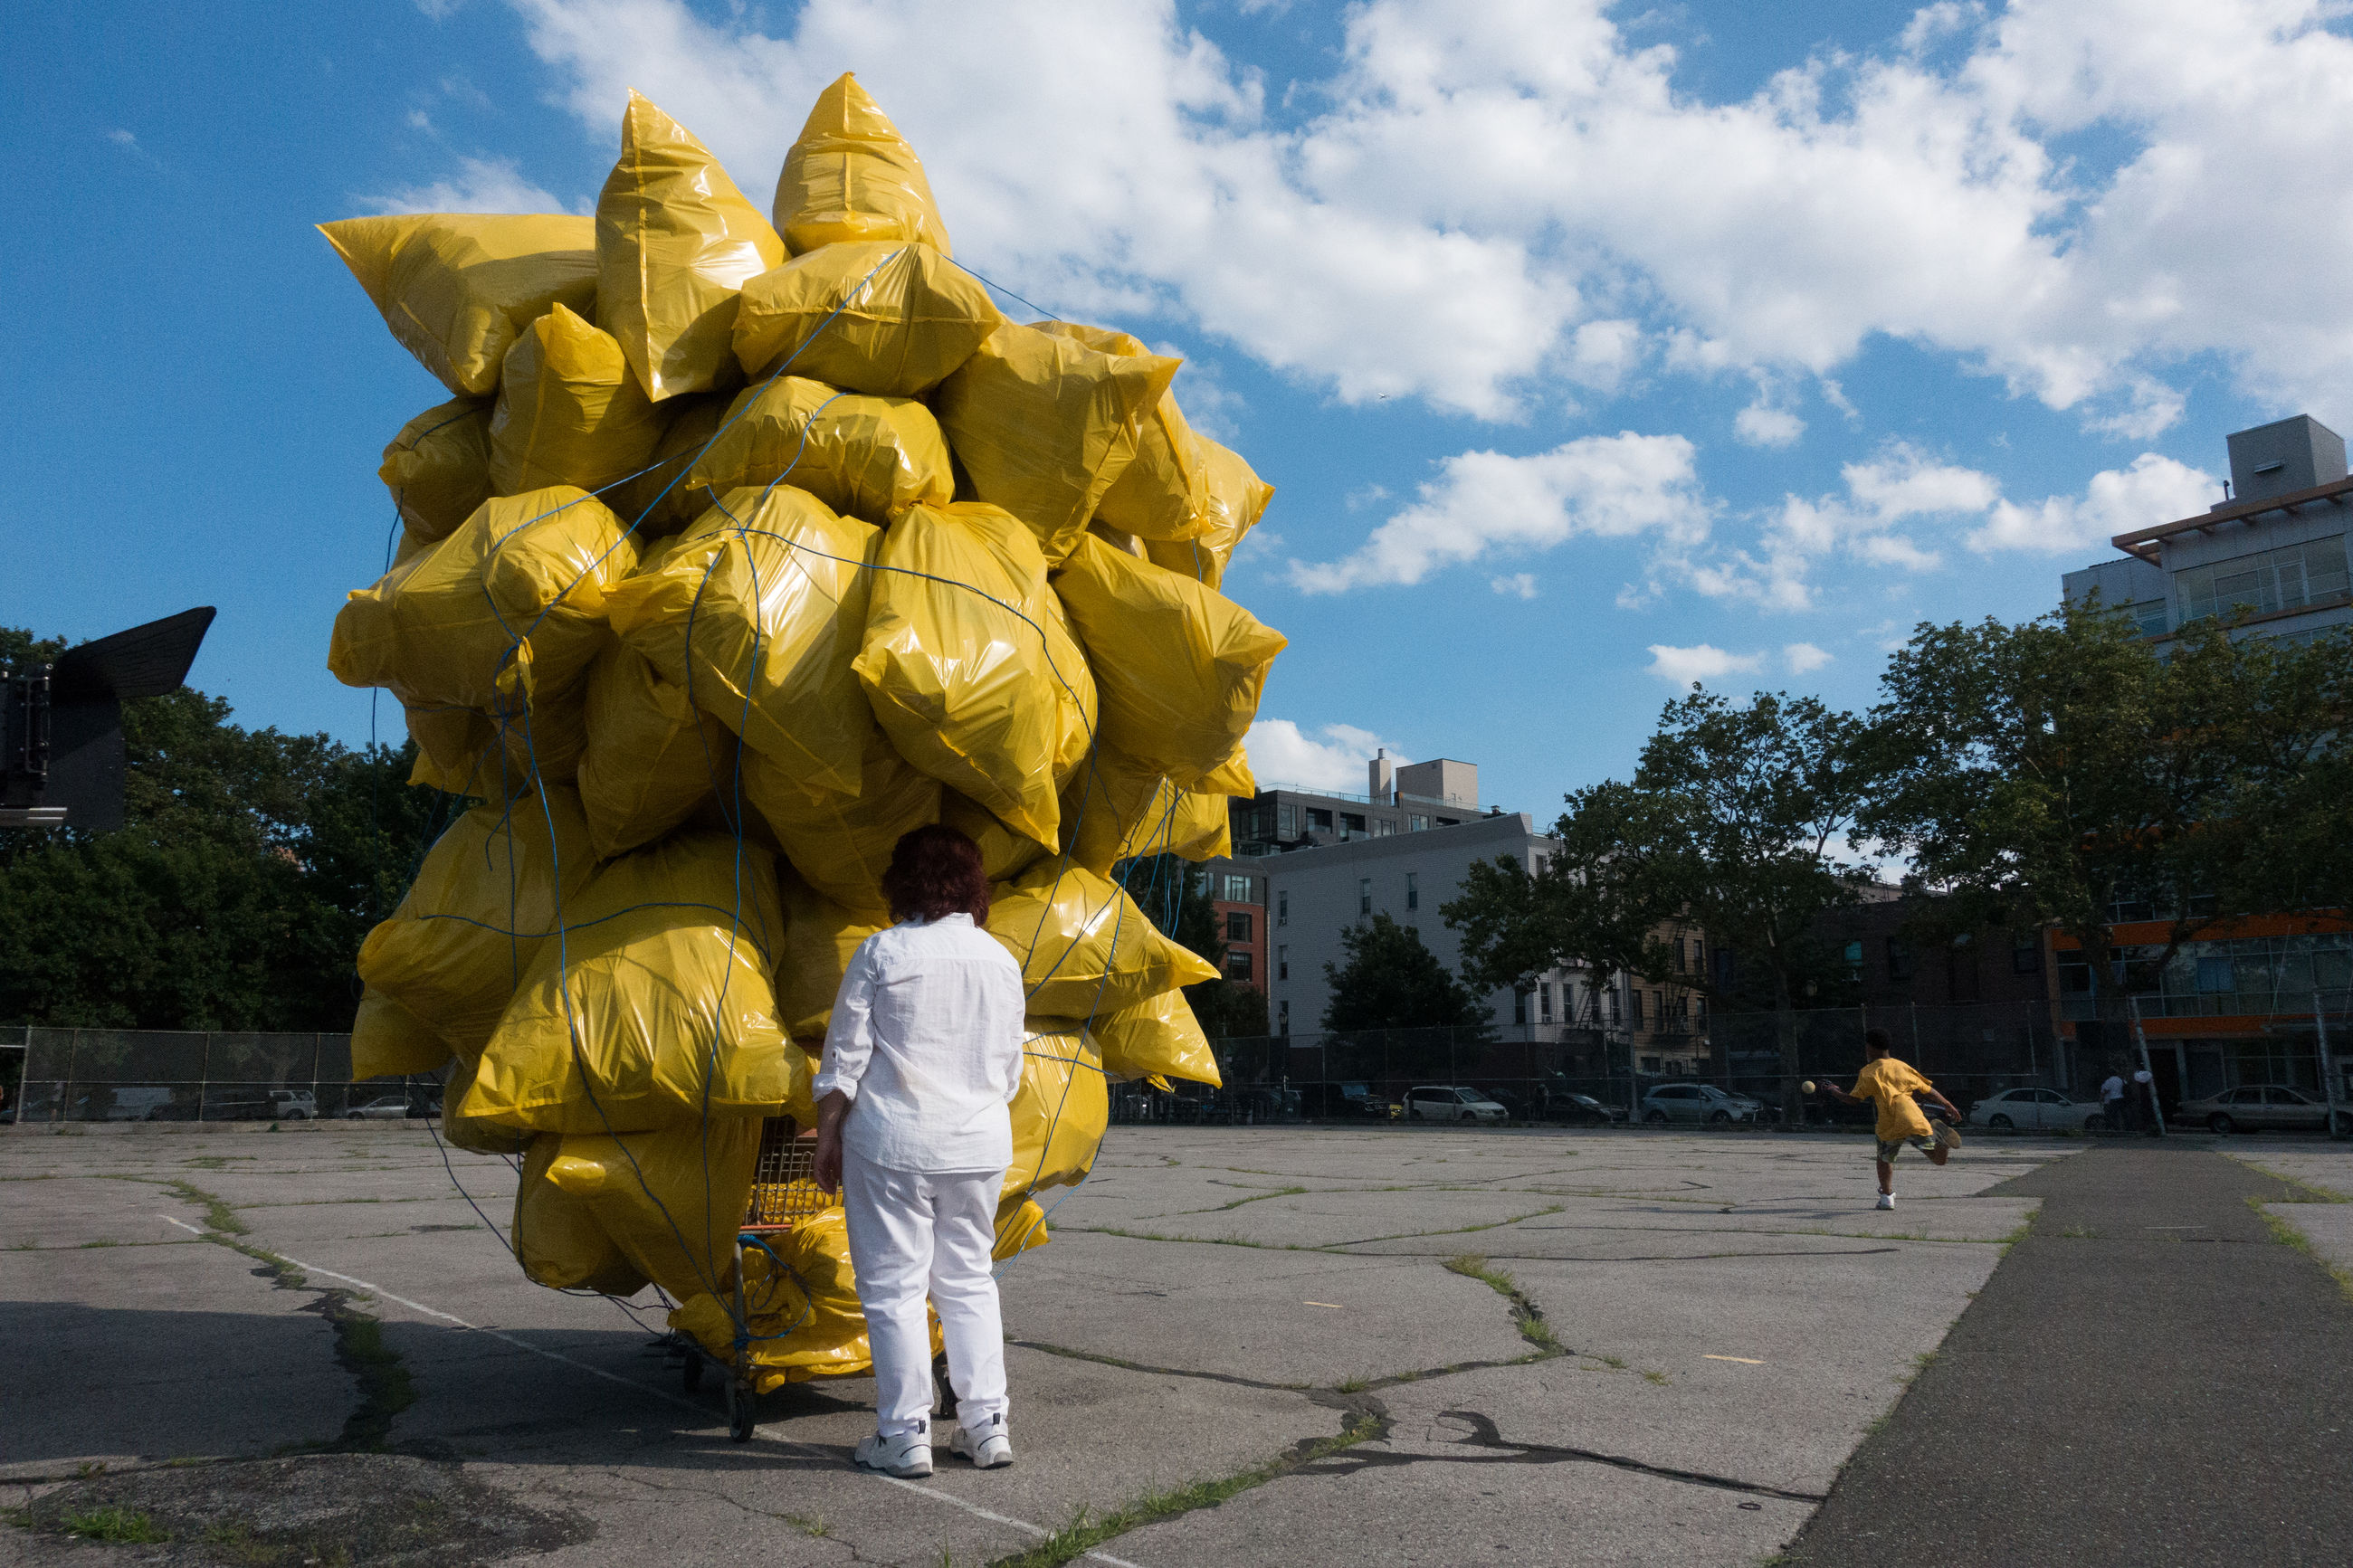 statue, sculpture, human representation, real people, architecture, built structure, building exterior, outdoors, sky, cloud - sky, yellow, day, men, tree, people